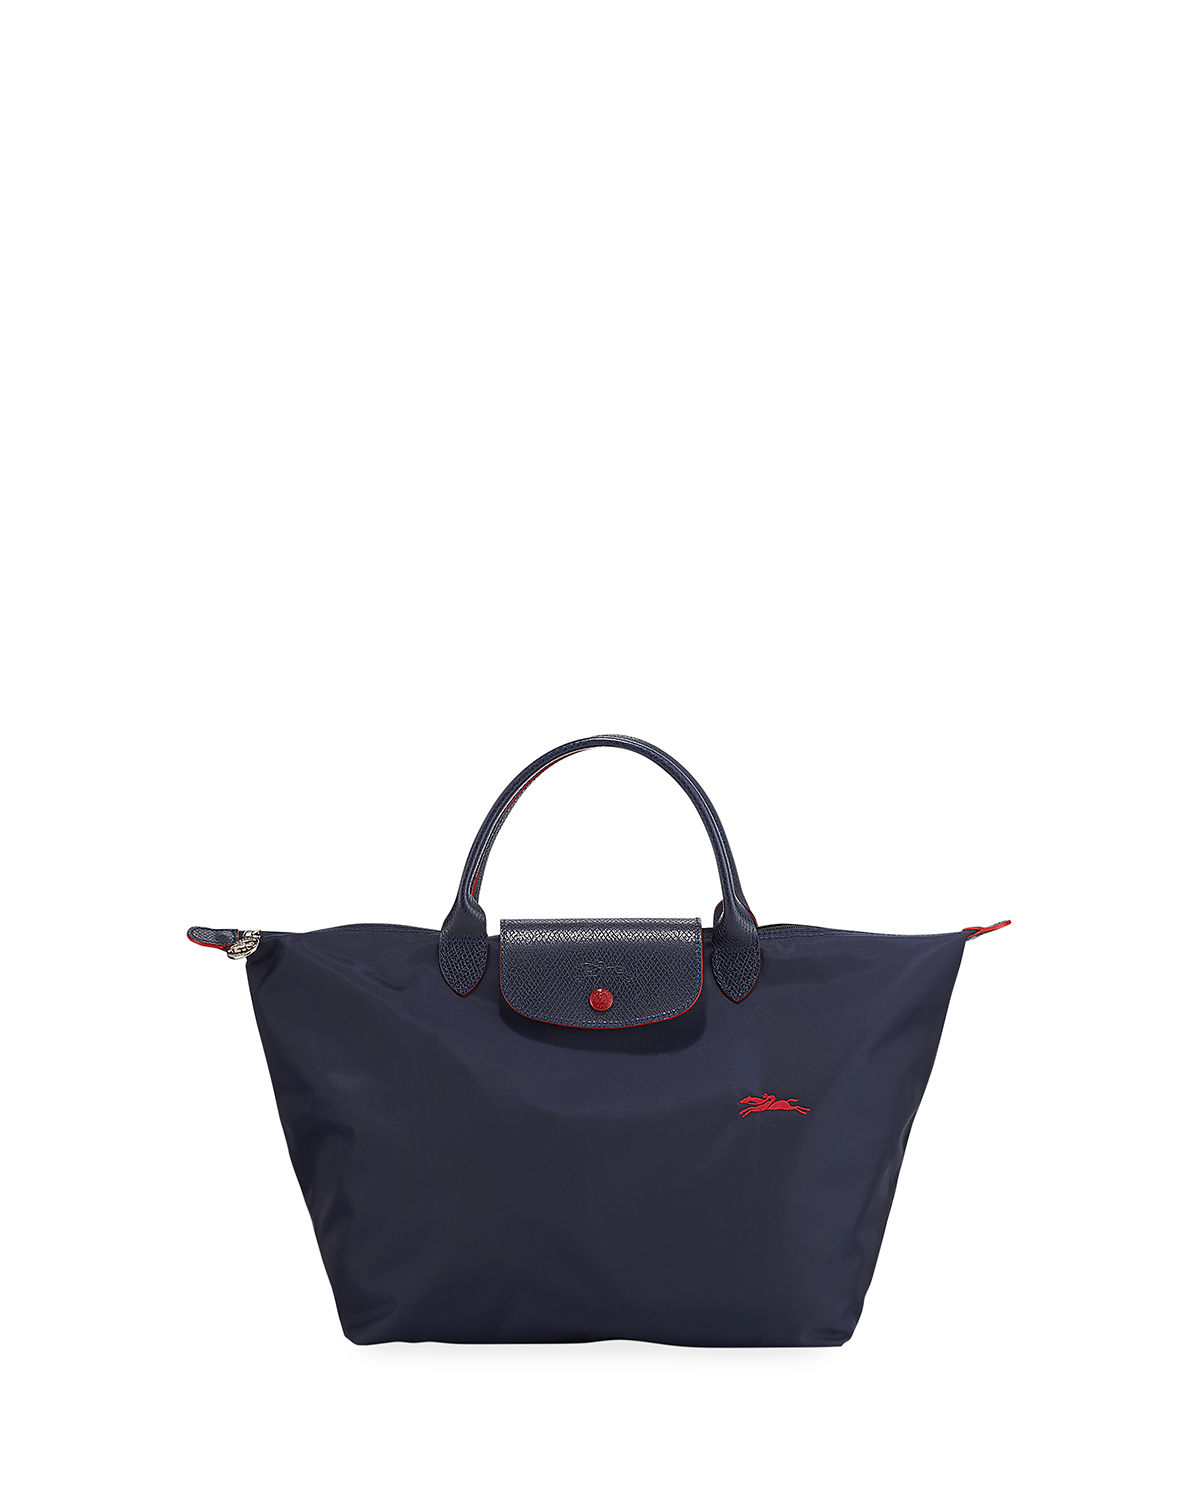 Le Pliage Club Tote Bag